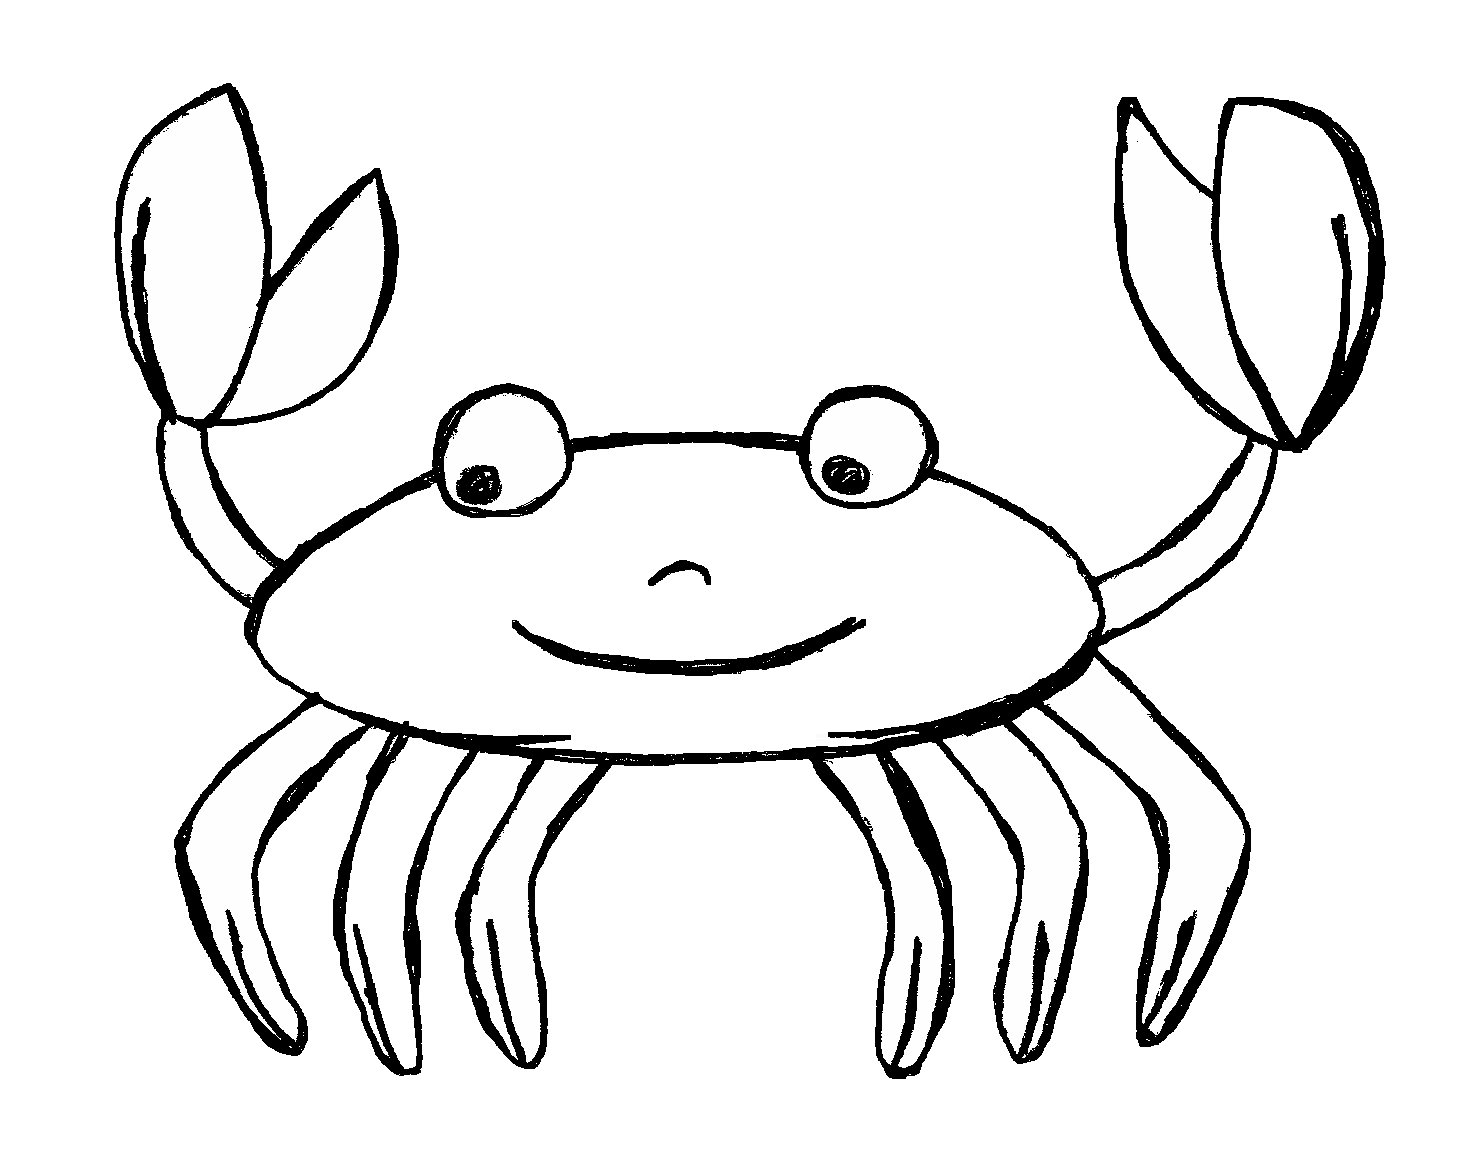 1472x1169 Octopus Black And White Cute Octopus Clipart Black And White